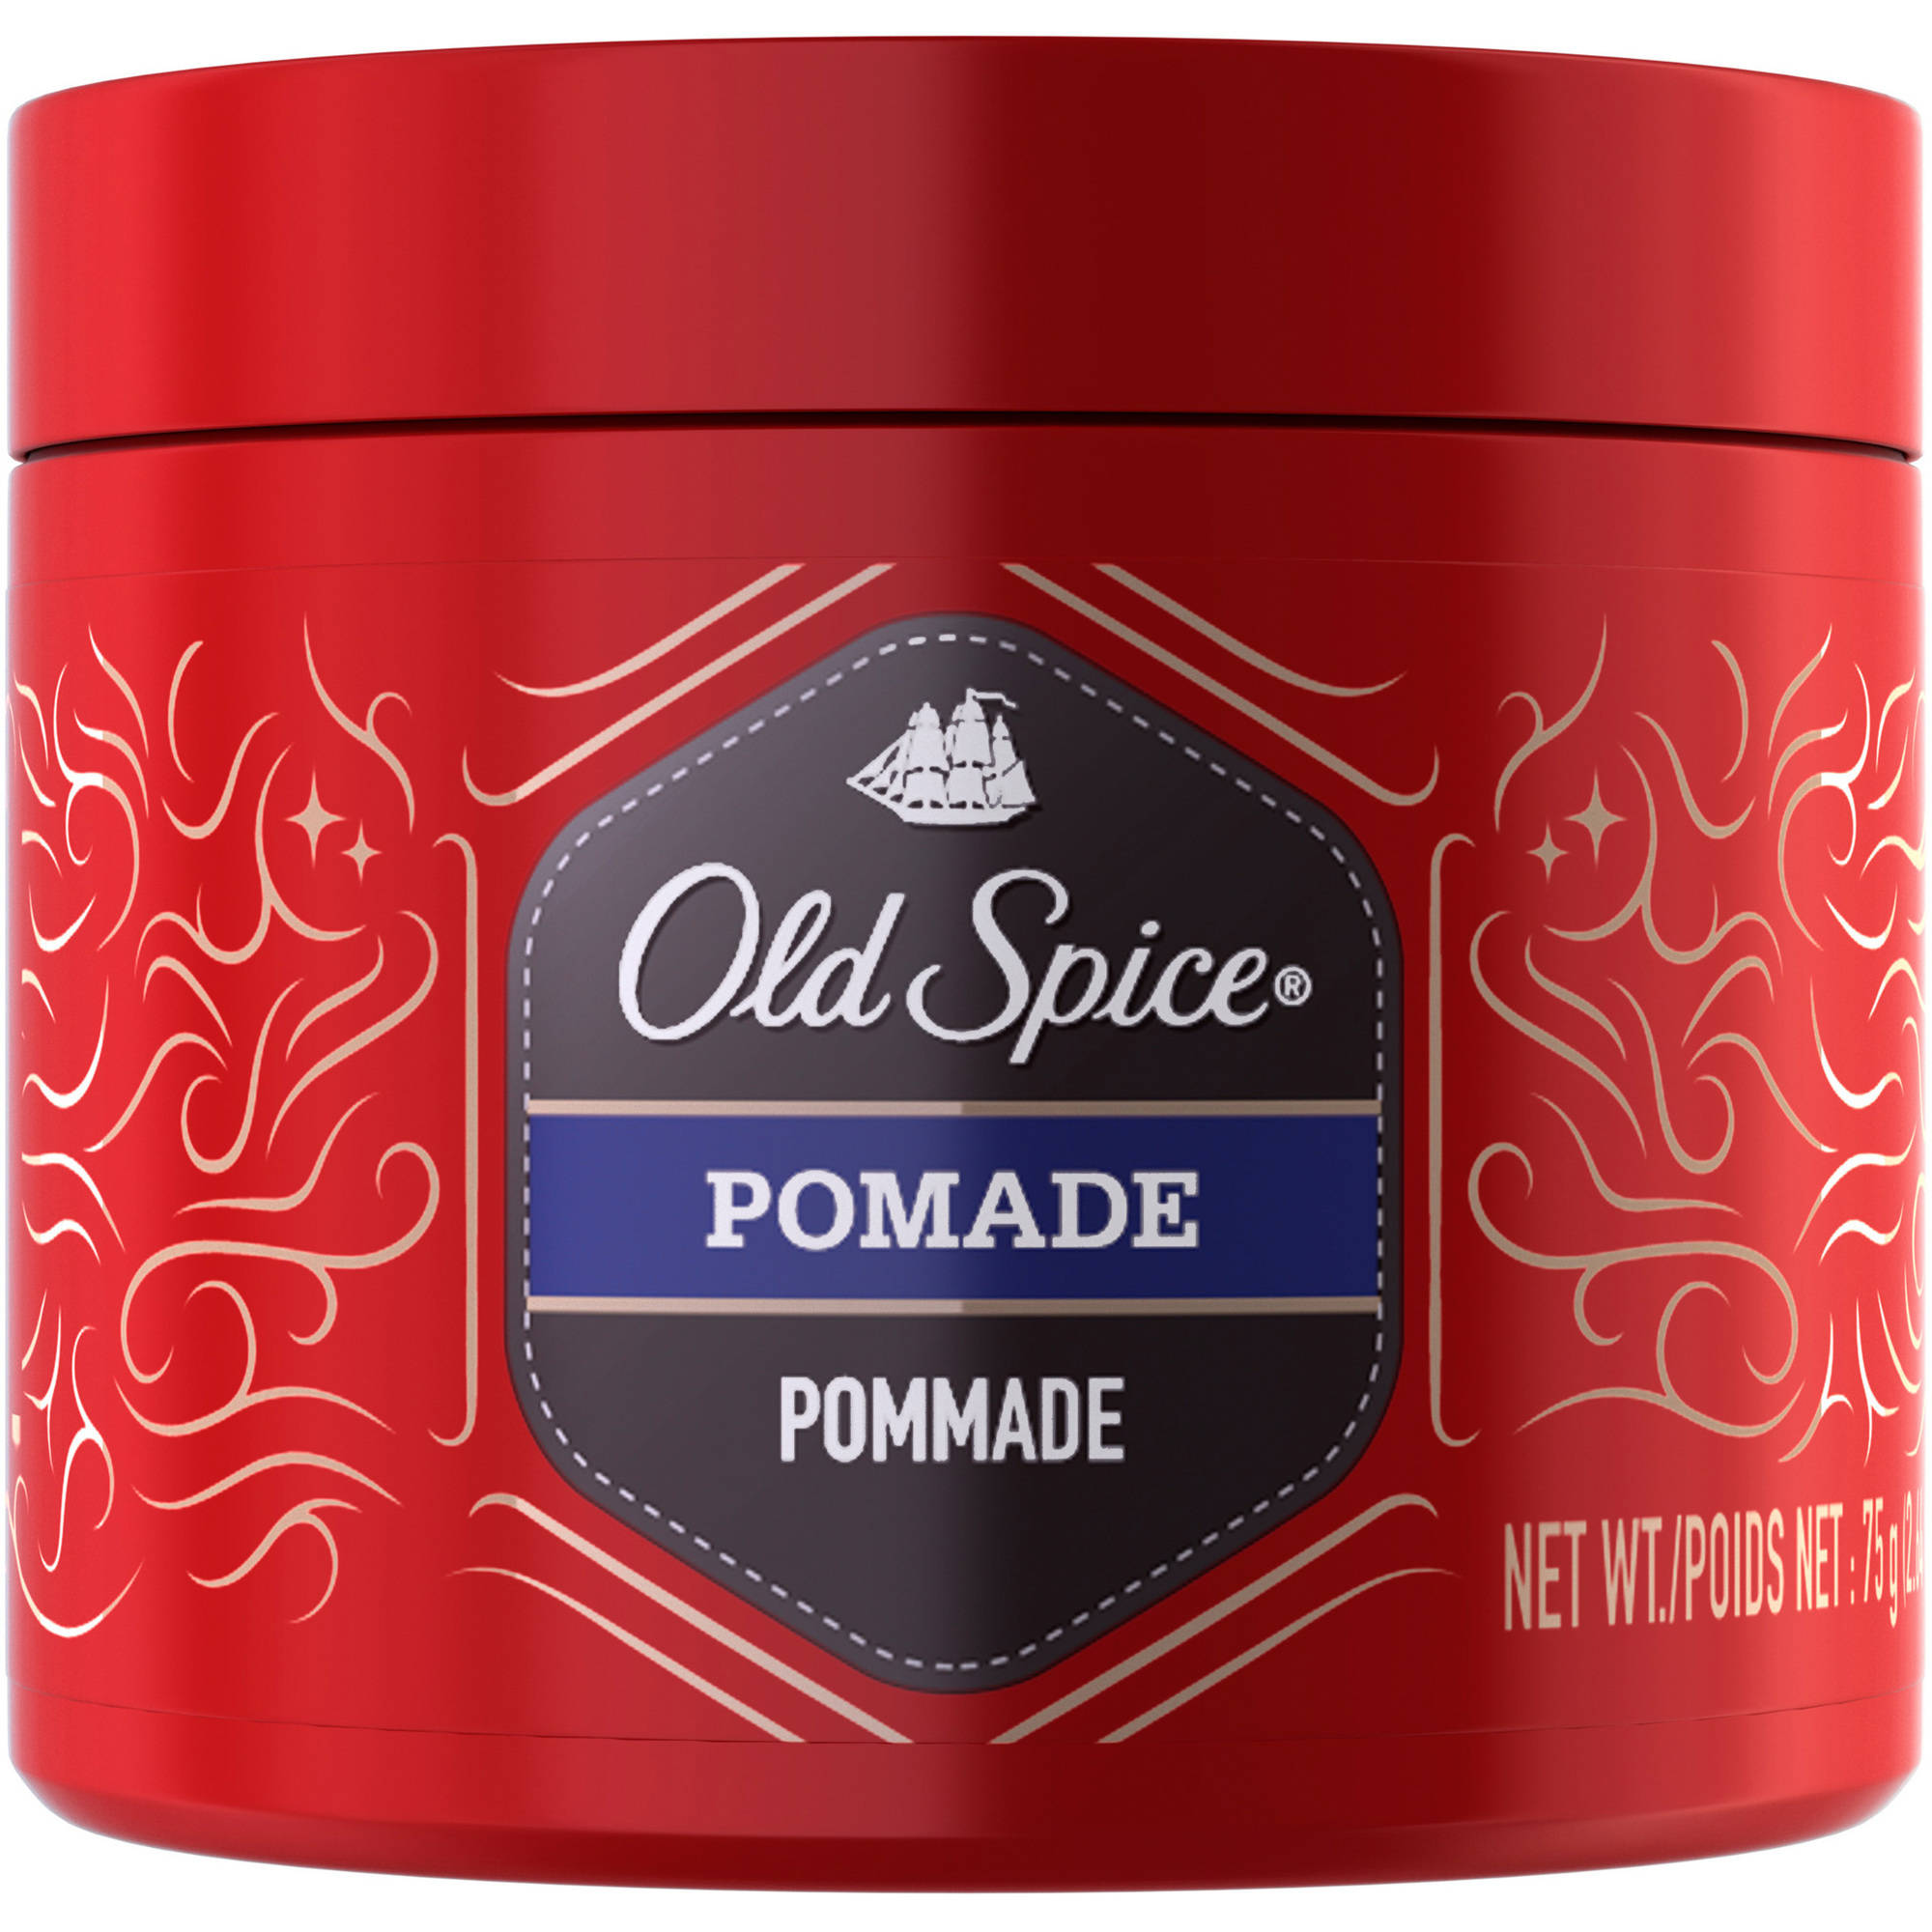 Old Spice Pomade, 2.64 oz. – Hair Styling for Men